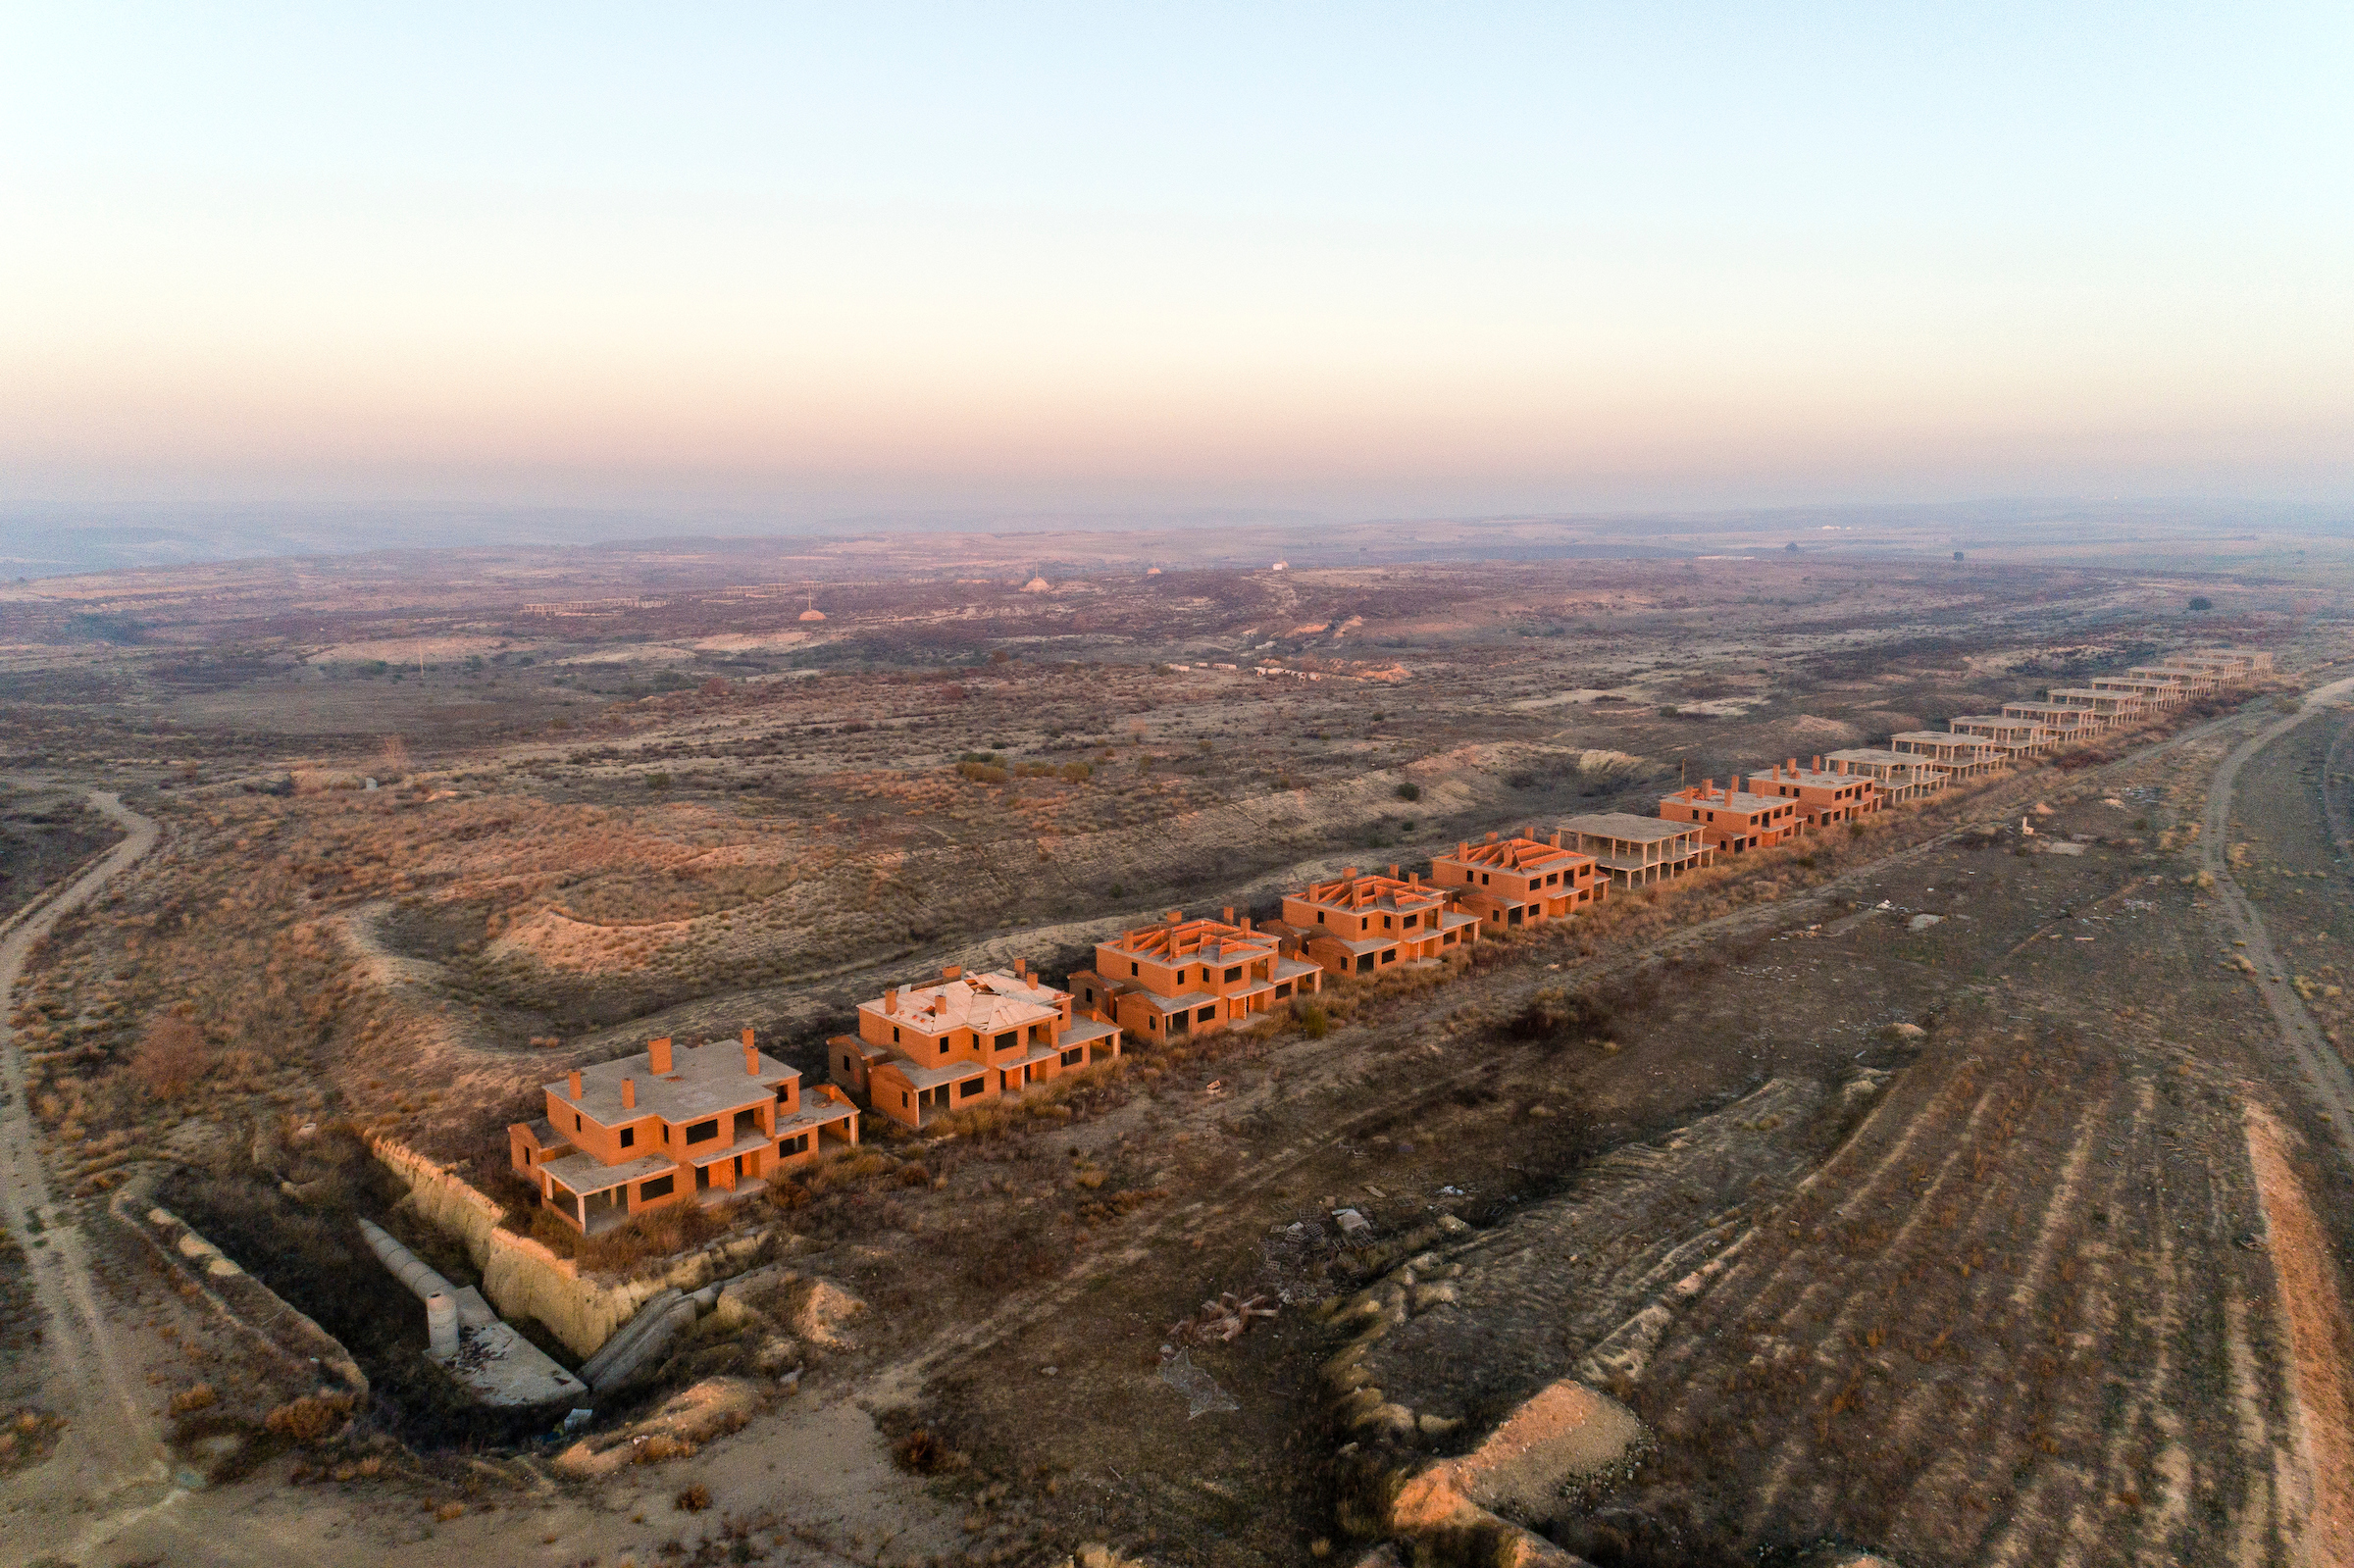 spain_drone_01 An aerial view of a partially built housing development. (Markel Redondo)